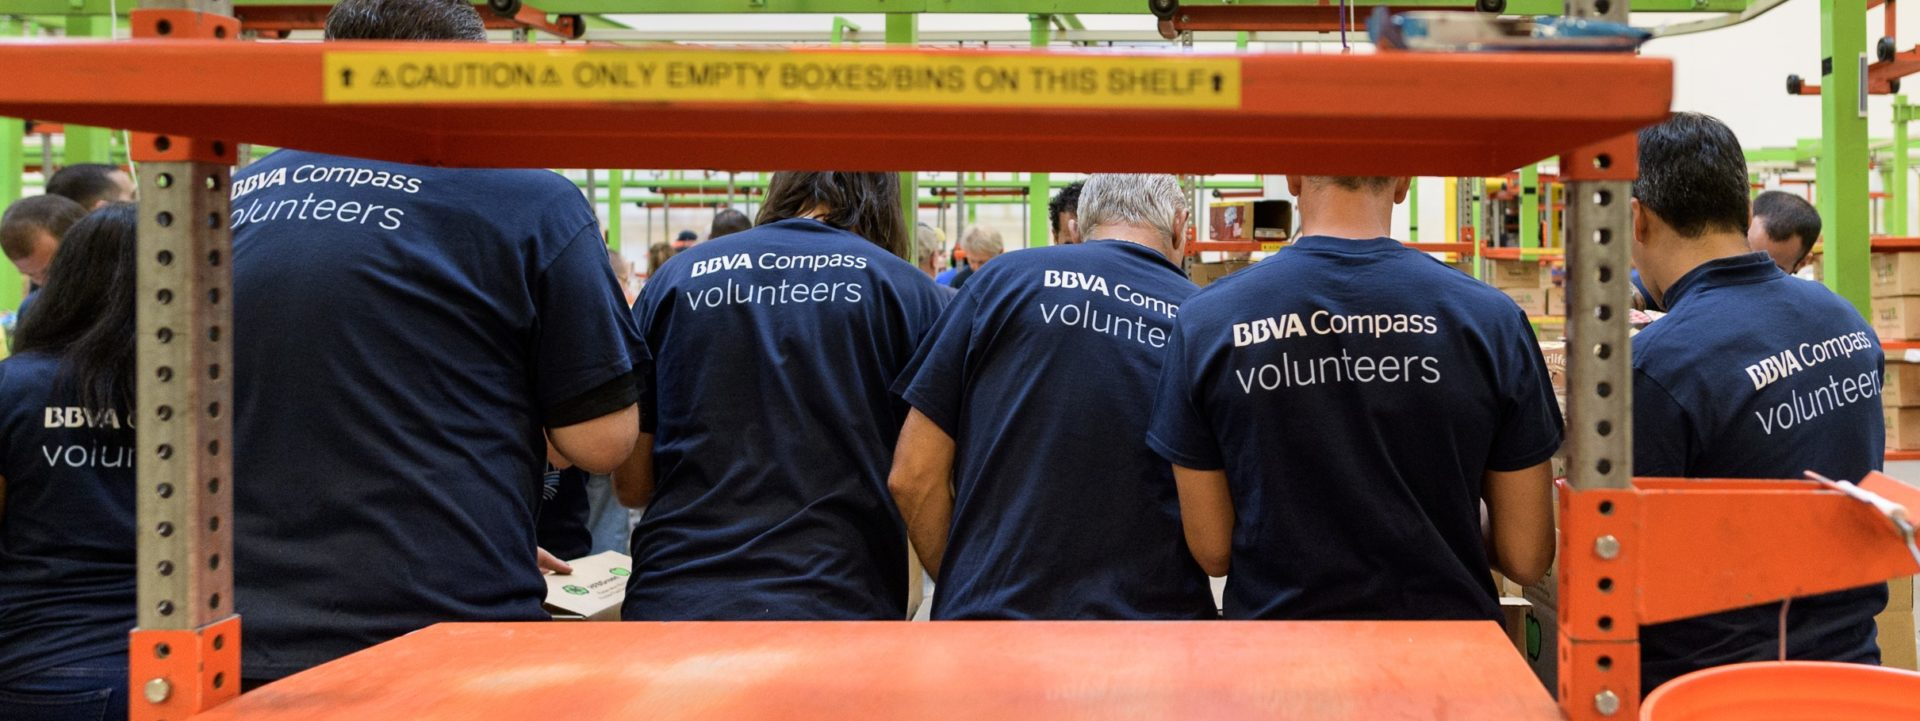 bbva-compass-houston-dynamo-copa-solidaria-banco-alimentos-voluntarios-bbva